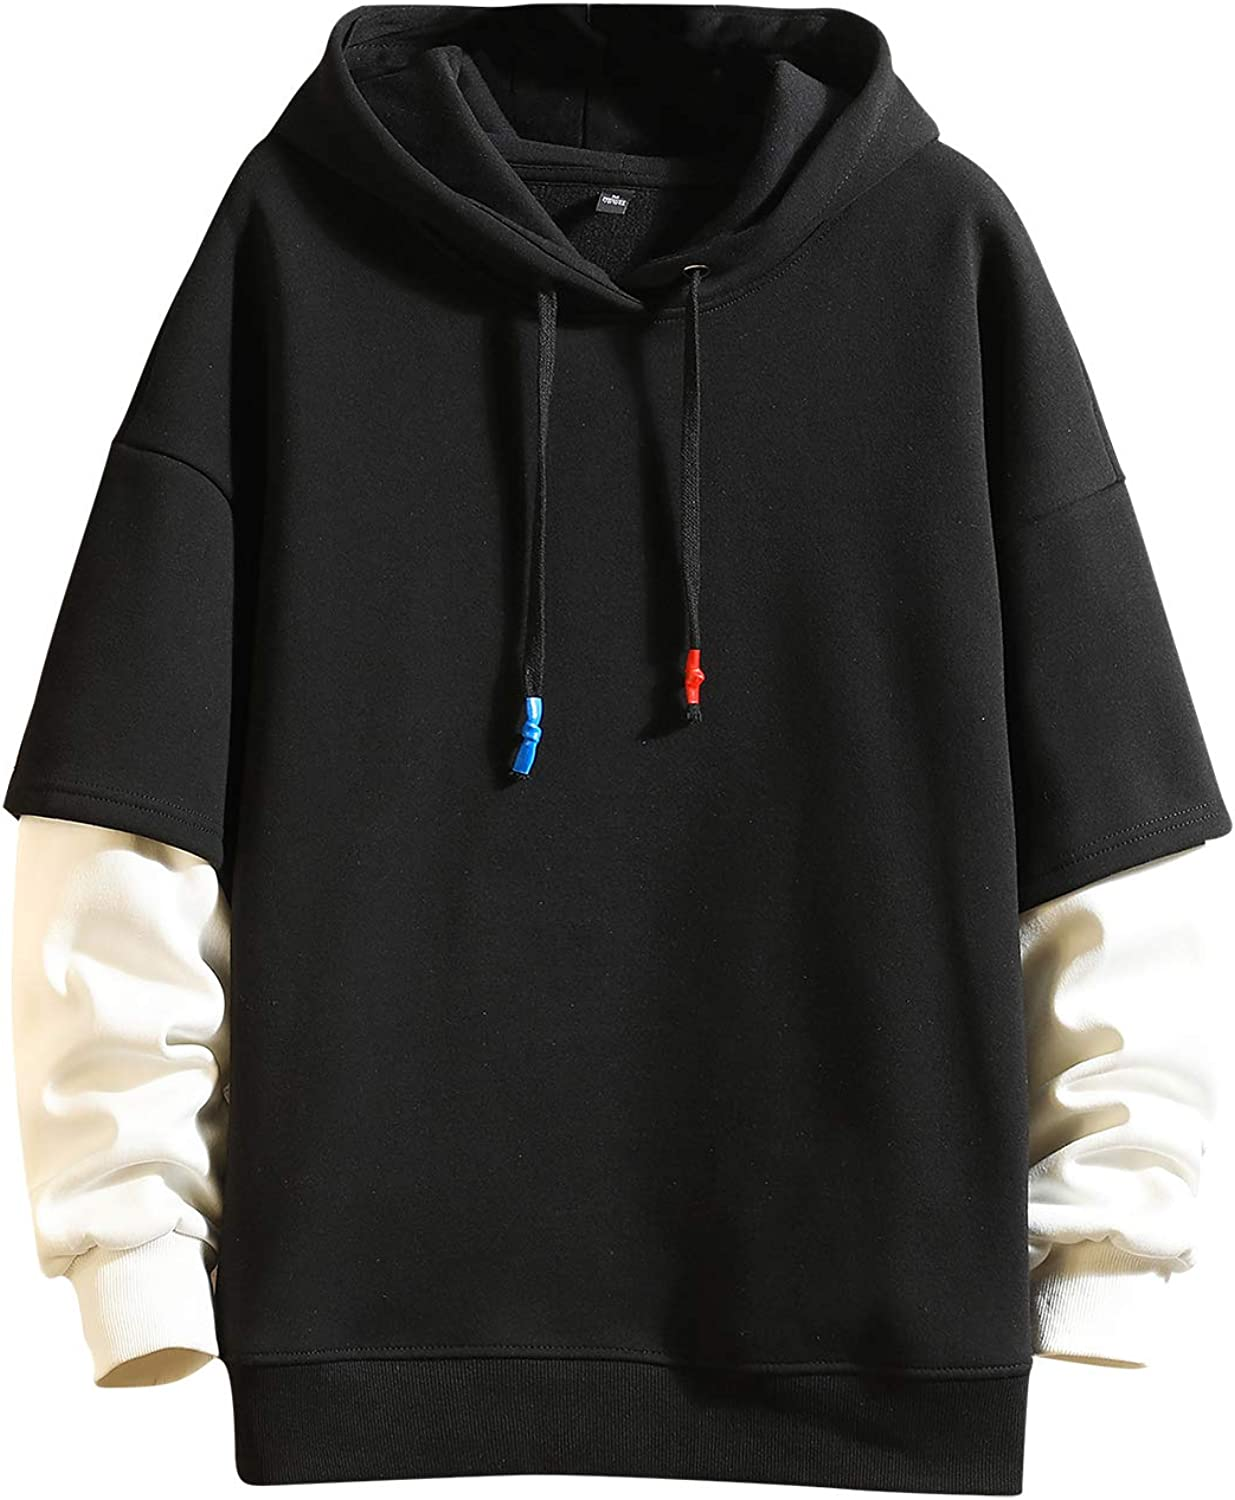 Fashion Hoodies Men's Color Block Pullover O-Neck Hooded Sweatshirt Patchwork